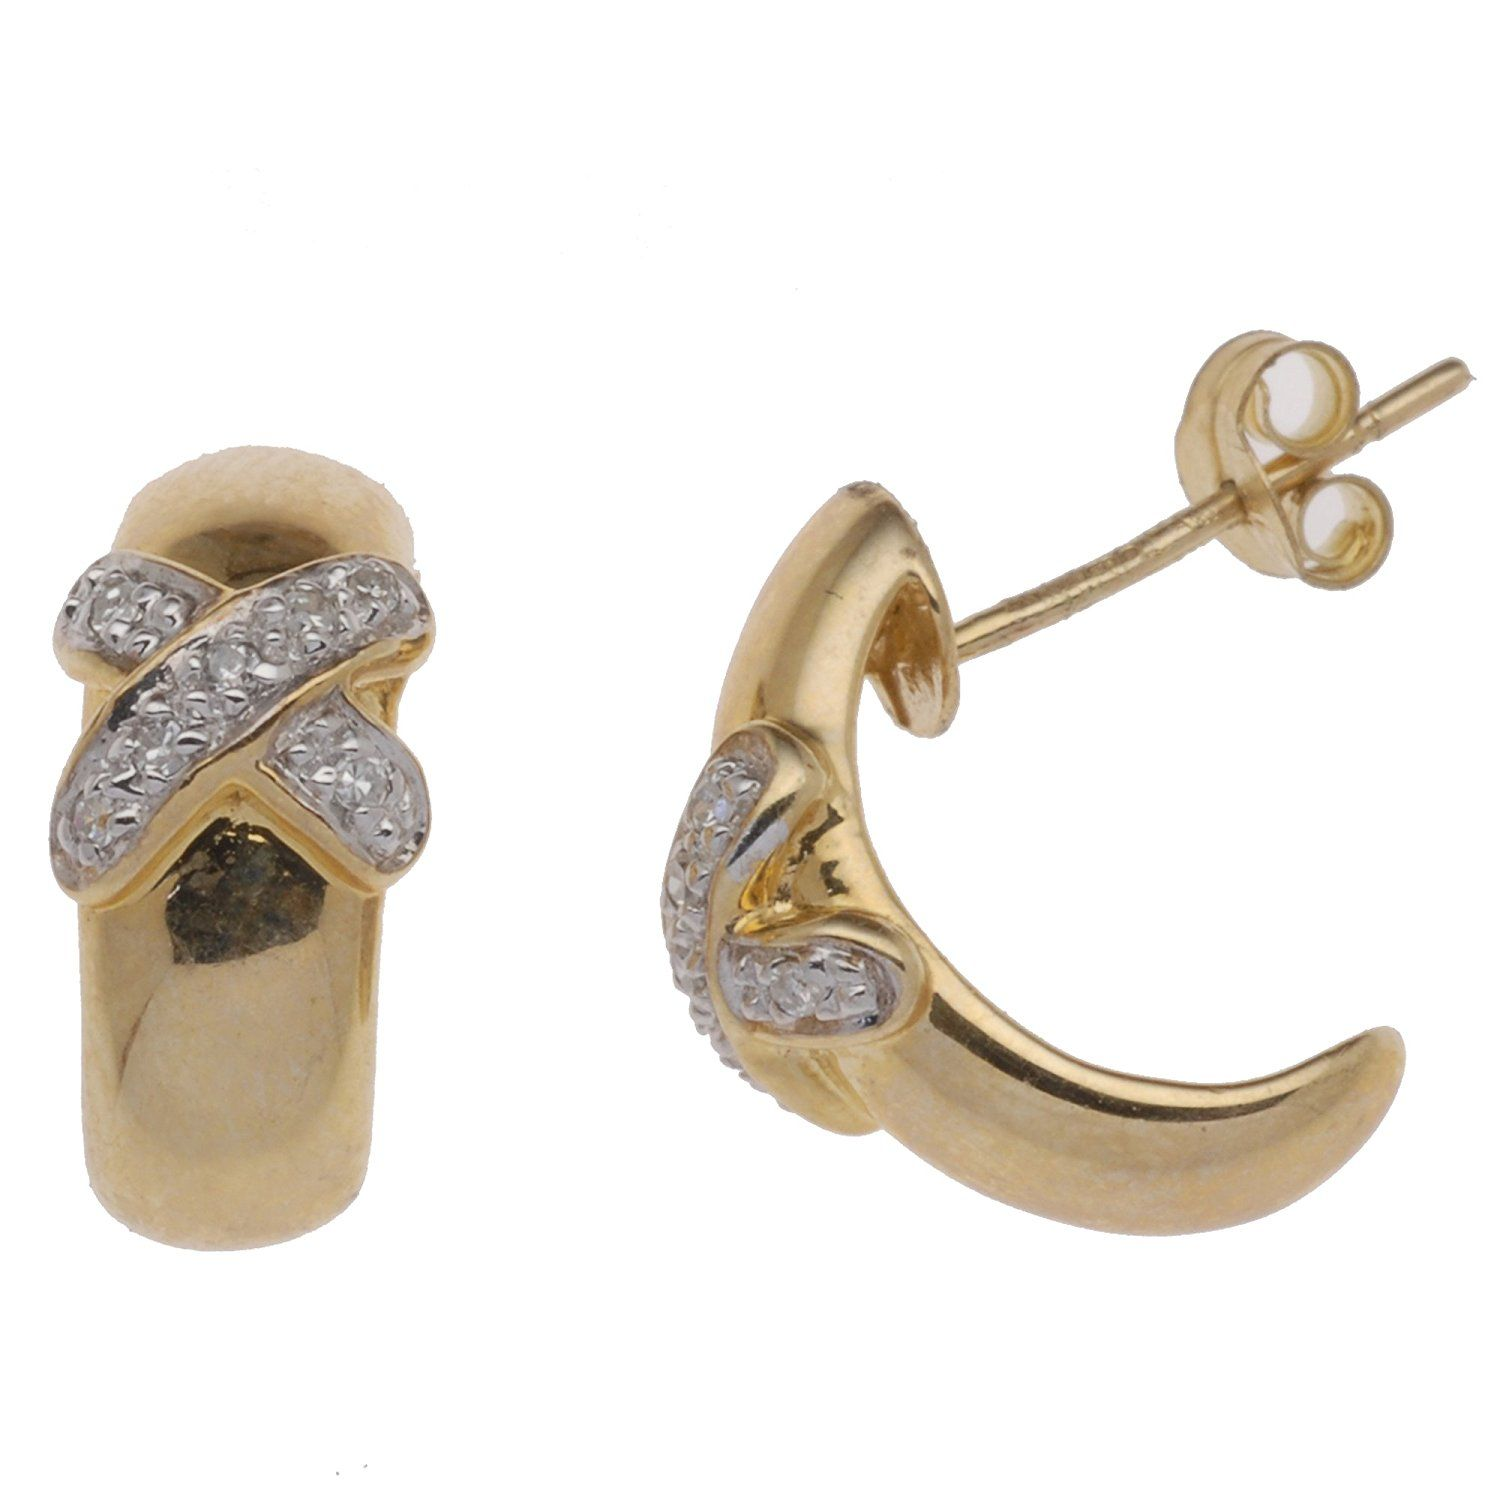 Adara 9 ct Yellow Gold 7 mm Ball Stud Earrings